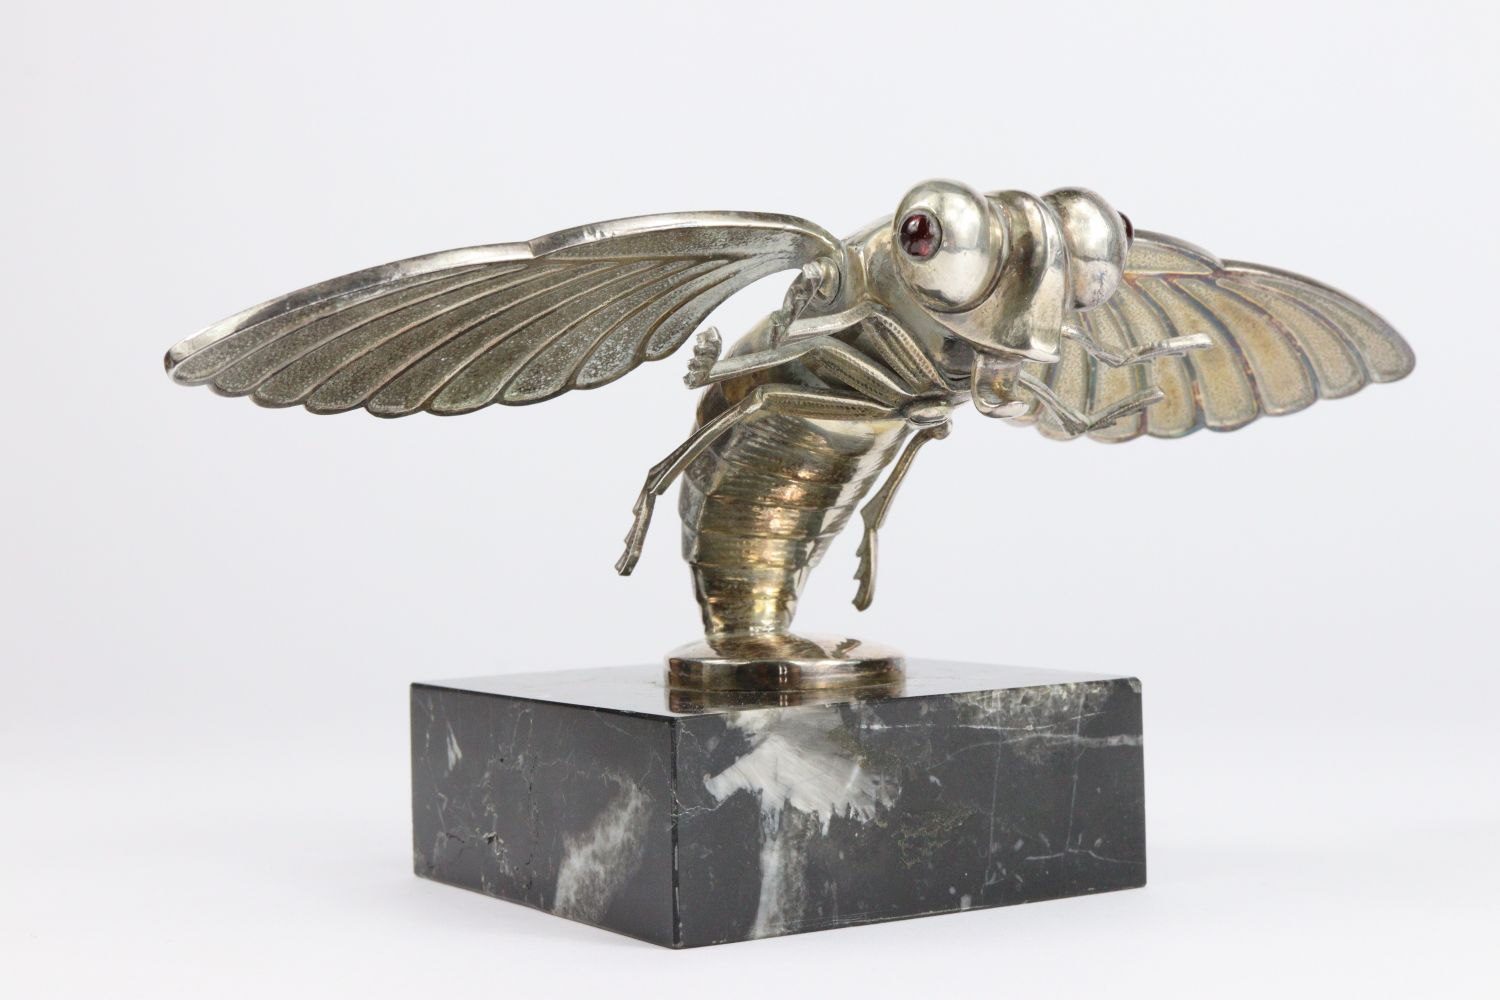 Silver, Automobilia & Collectables including Jewellery